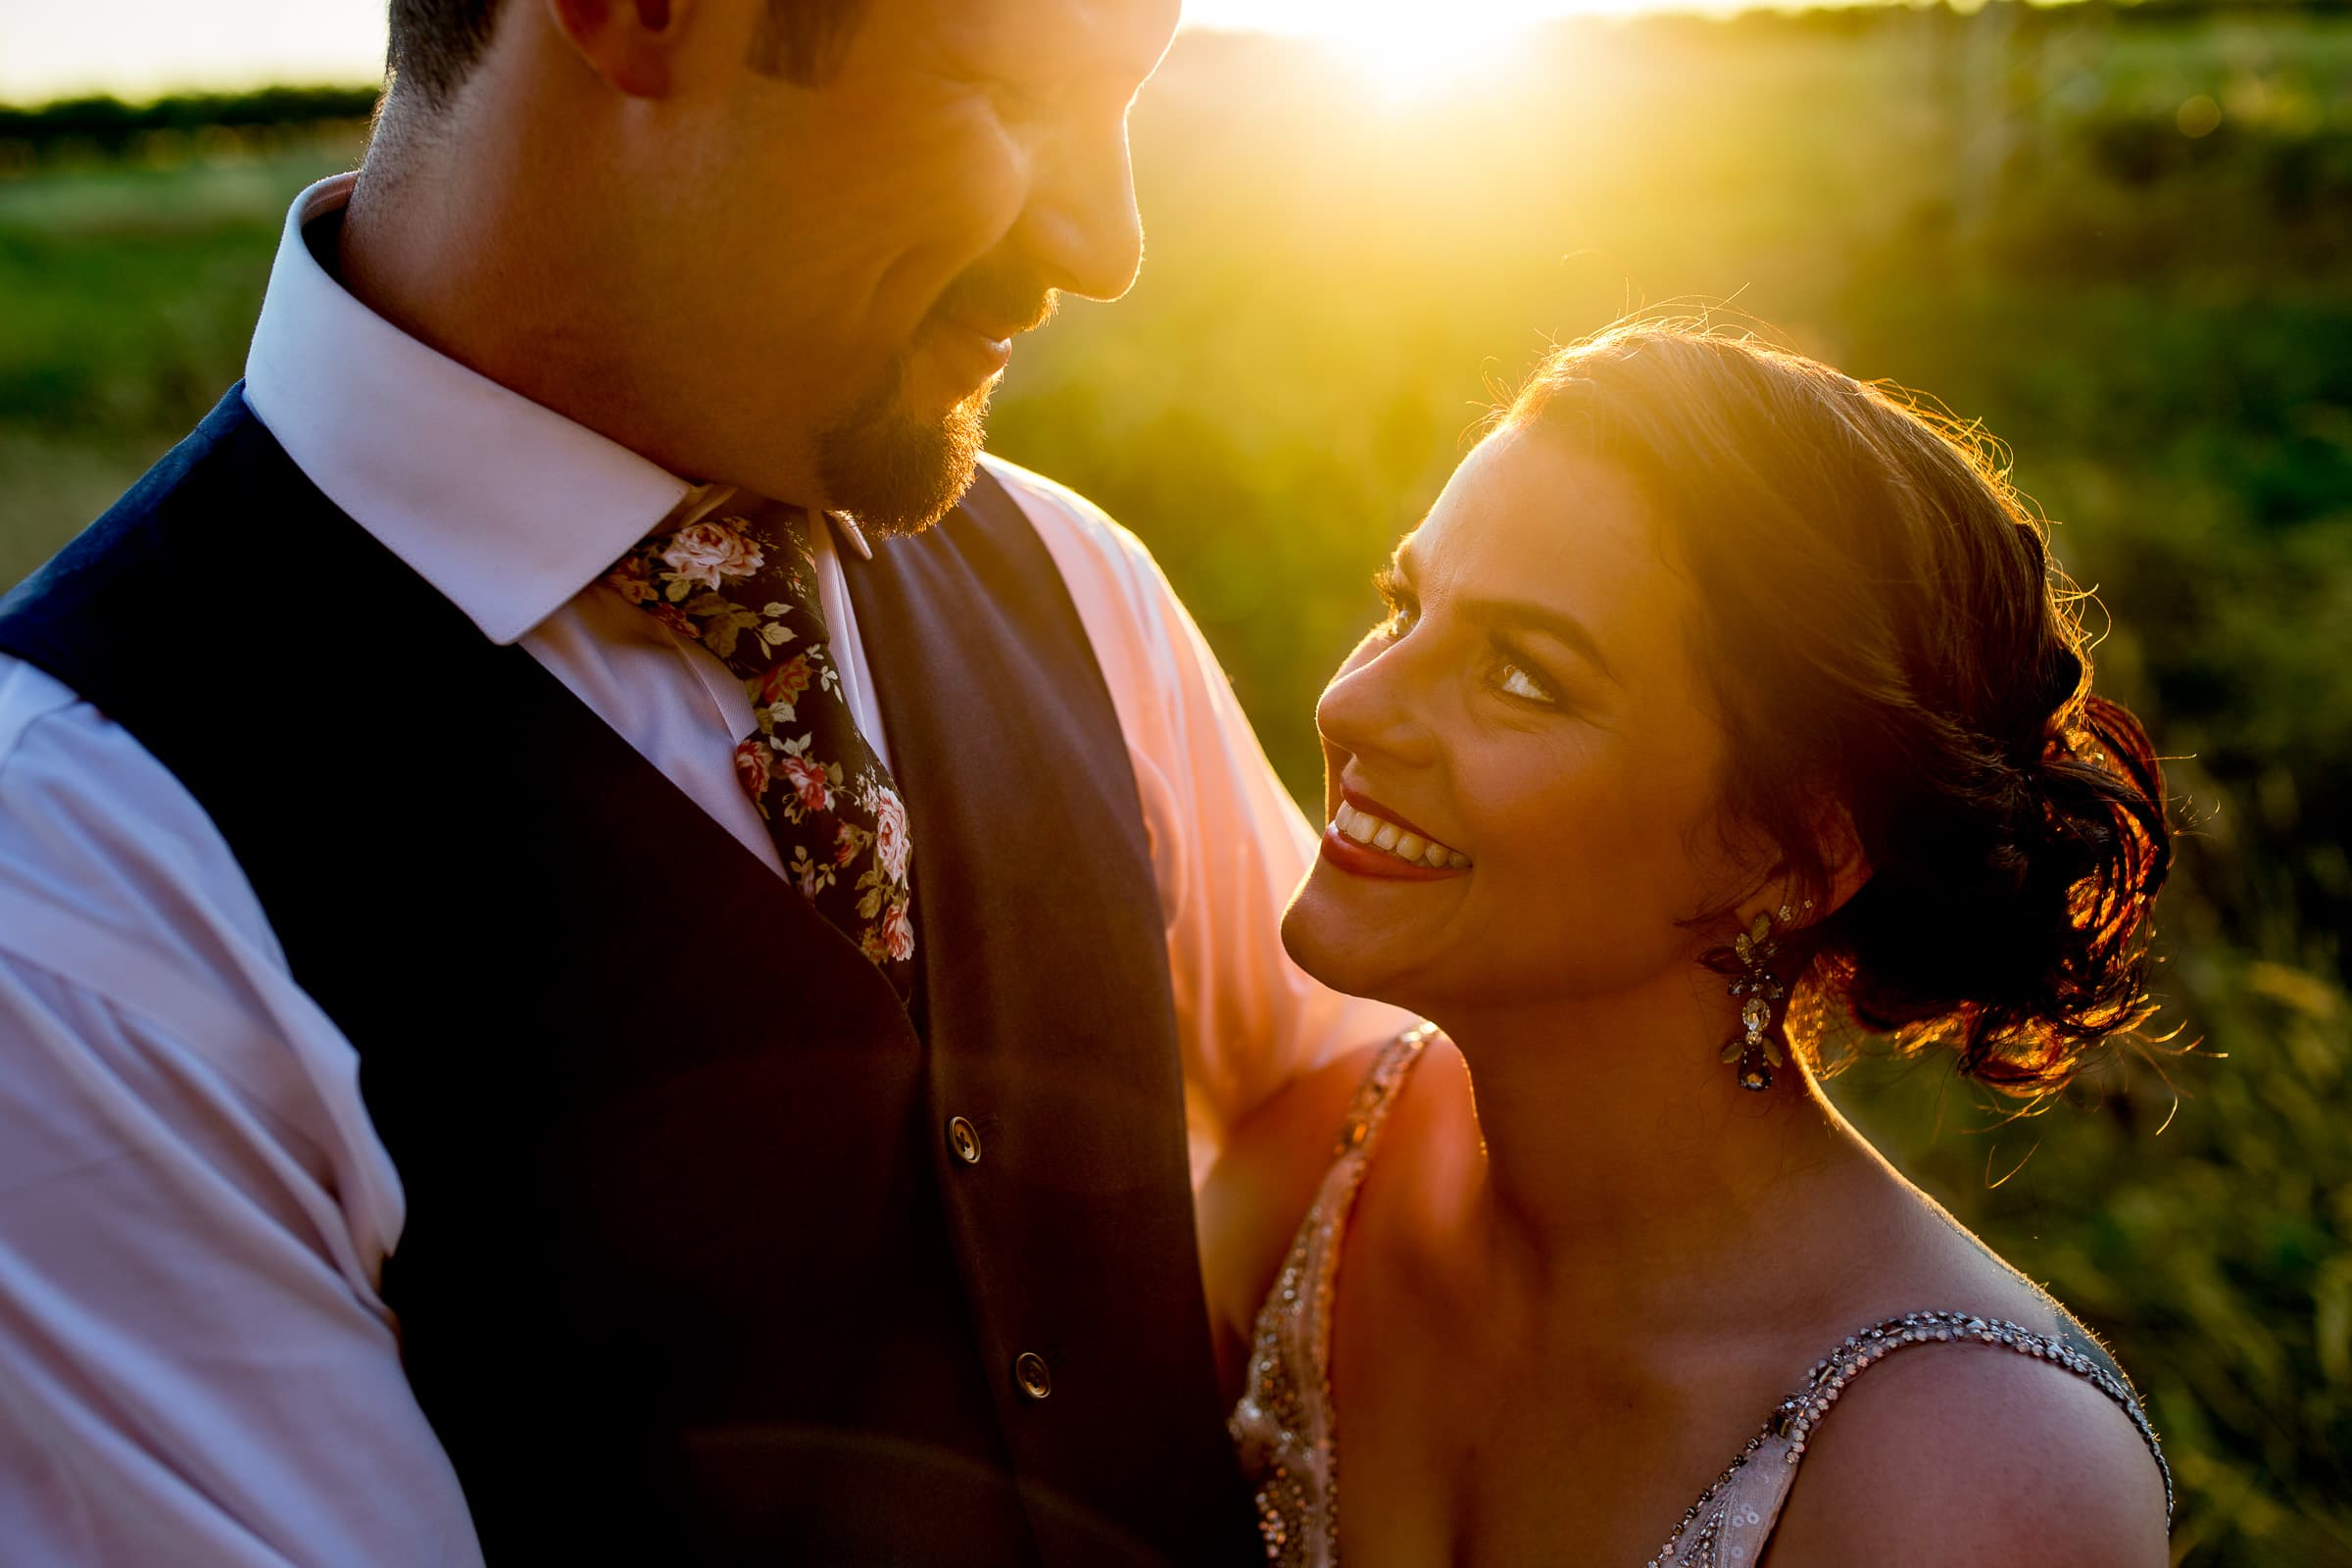 Gorgeous warm back light on a bride and groom holding each other during their Postlewait's Country wedding located in the heart of the Willamette Valley between Portland and Salem near Aurora, Oregon